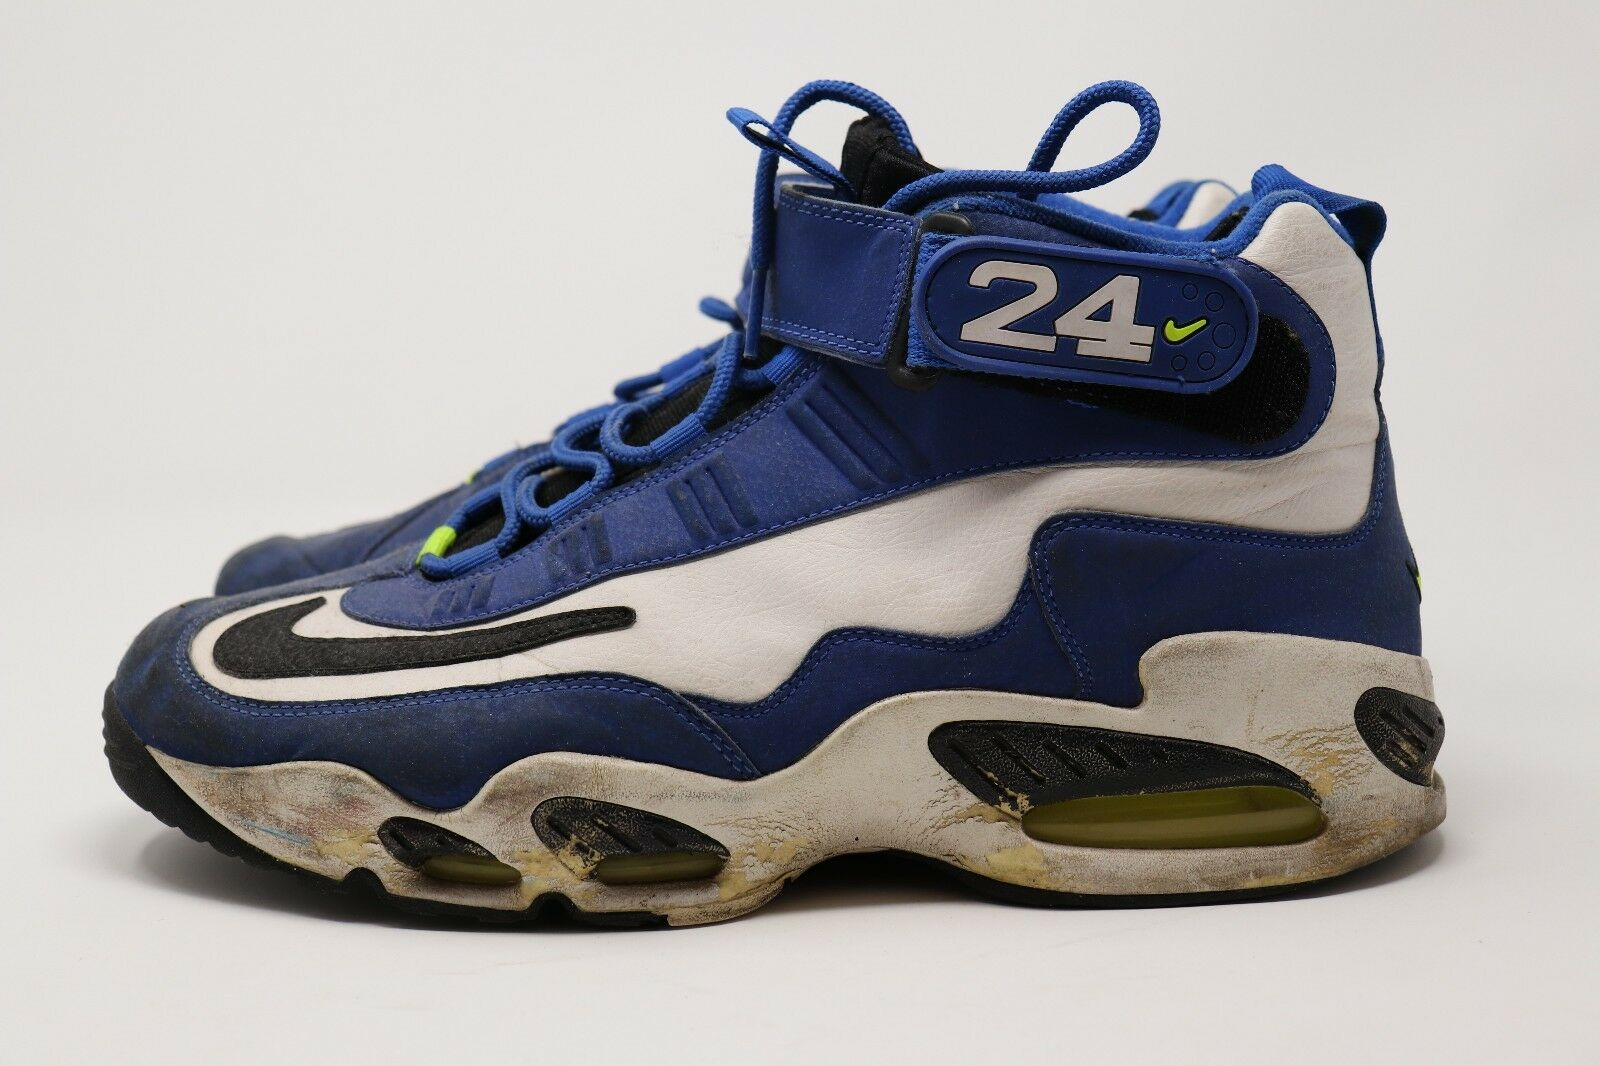 best-selling model of the brand 2009 Nike Air Griffey Max 1 Comfortable